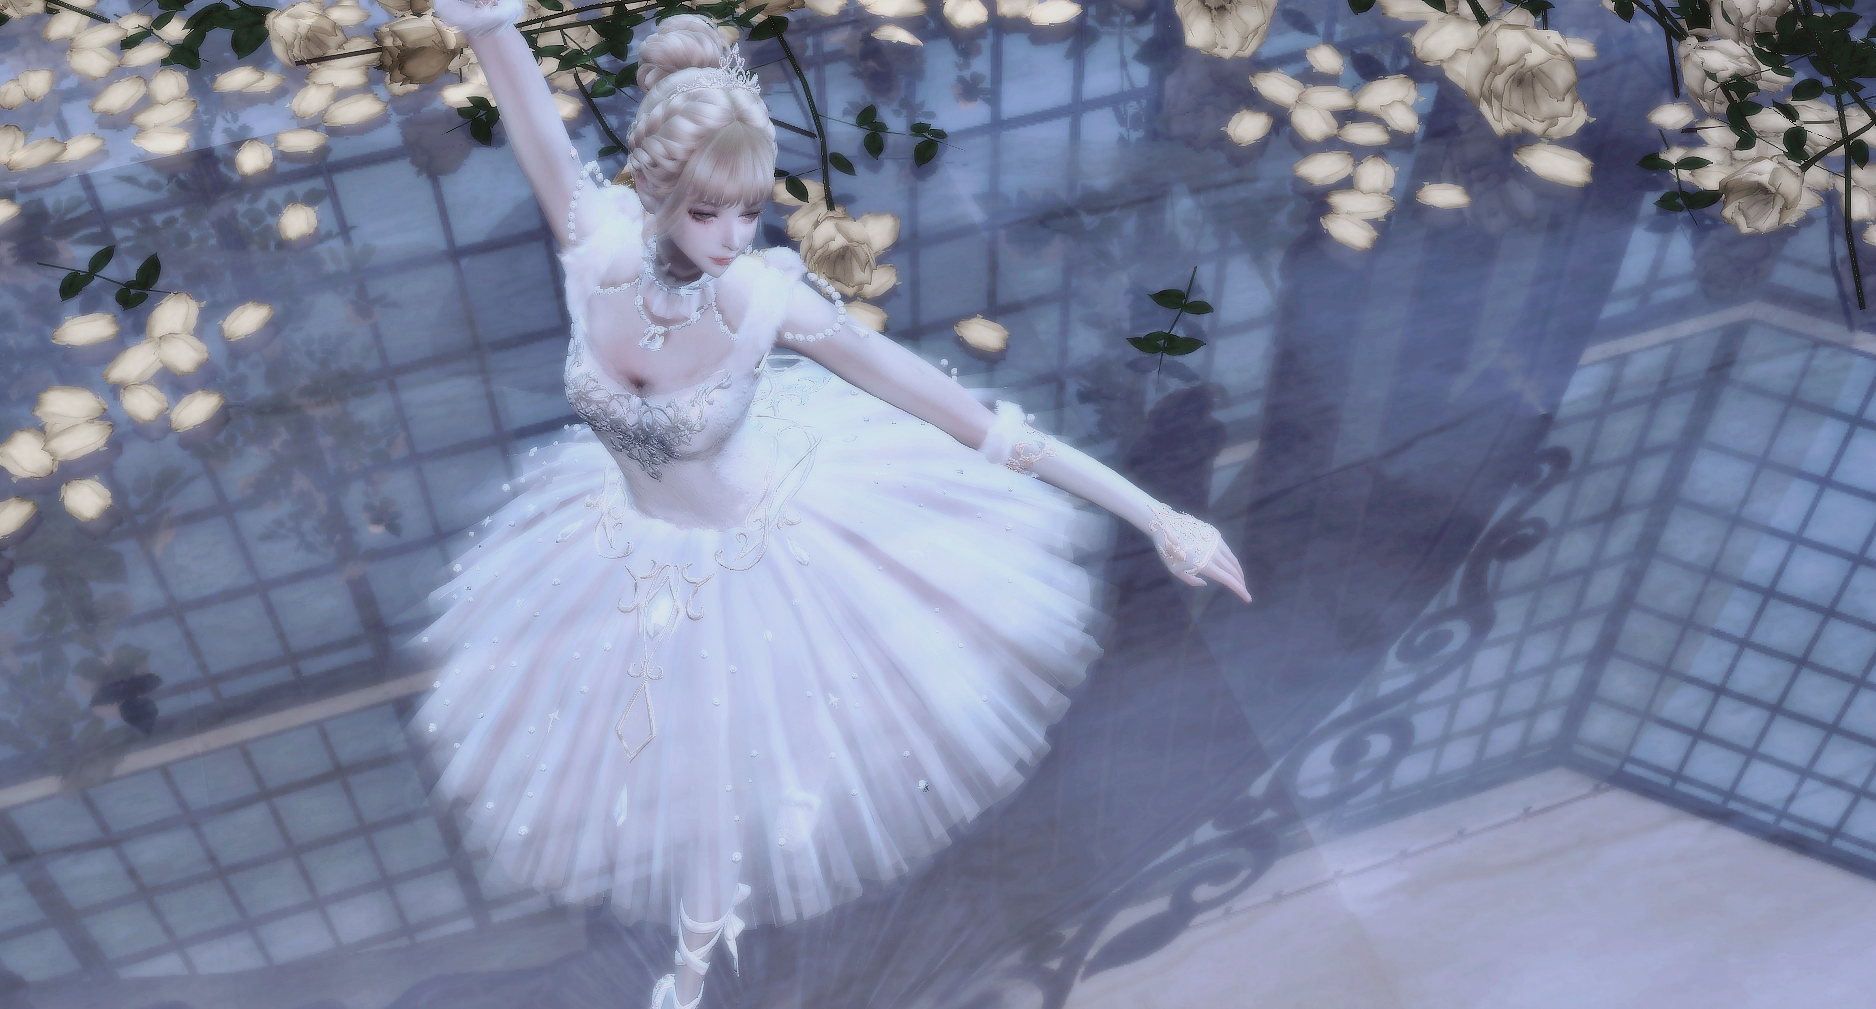 Sims 4 Cc Ballet Suit Set Sfs Sims Sims 4 Sims 4 Characters